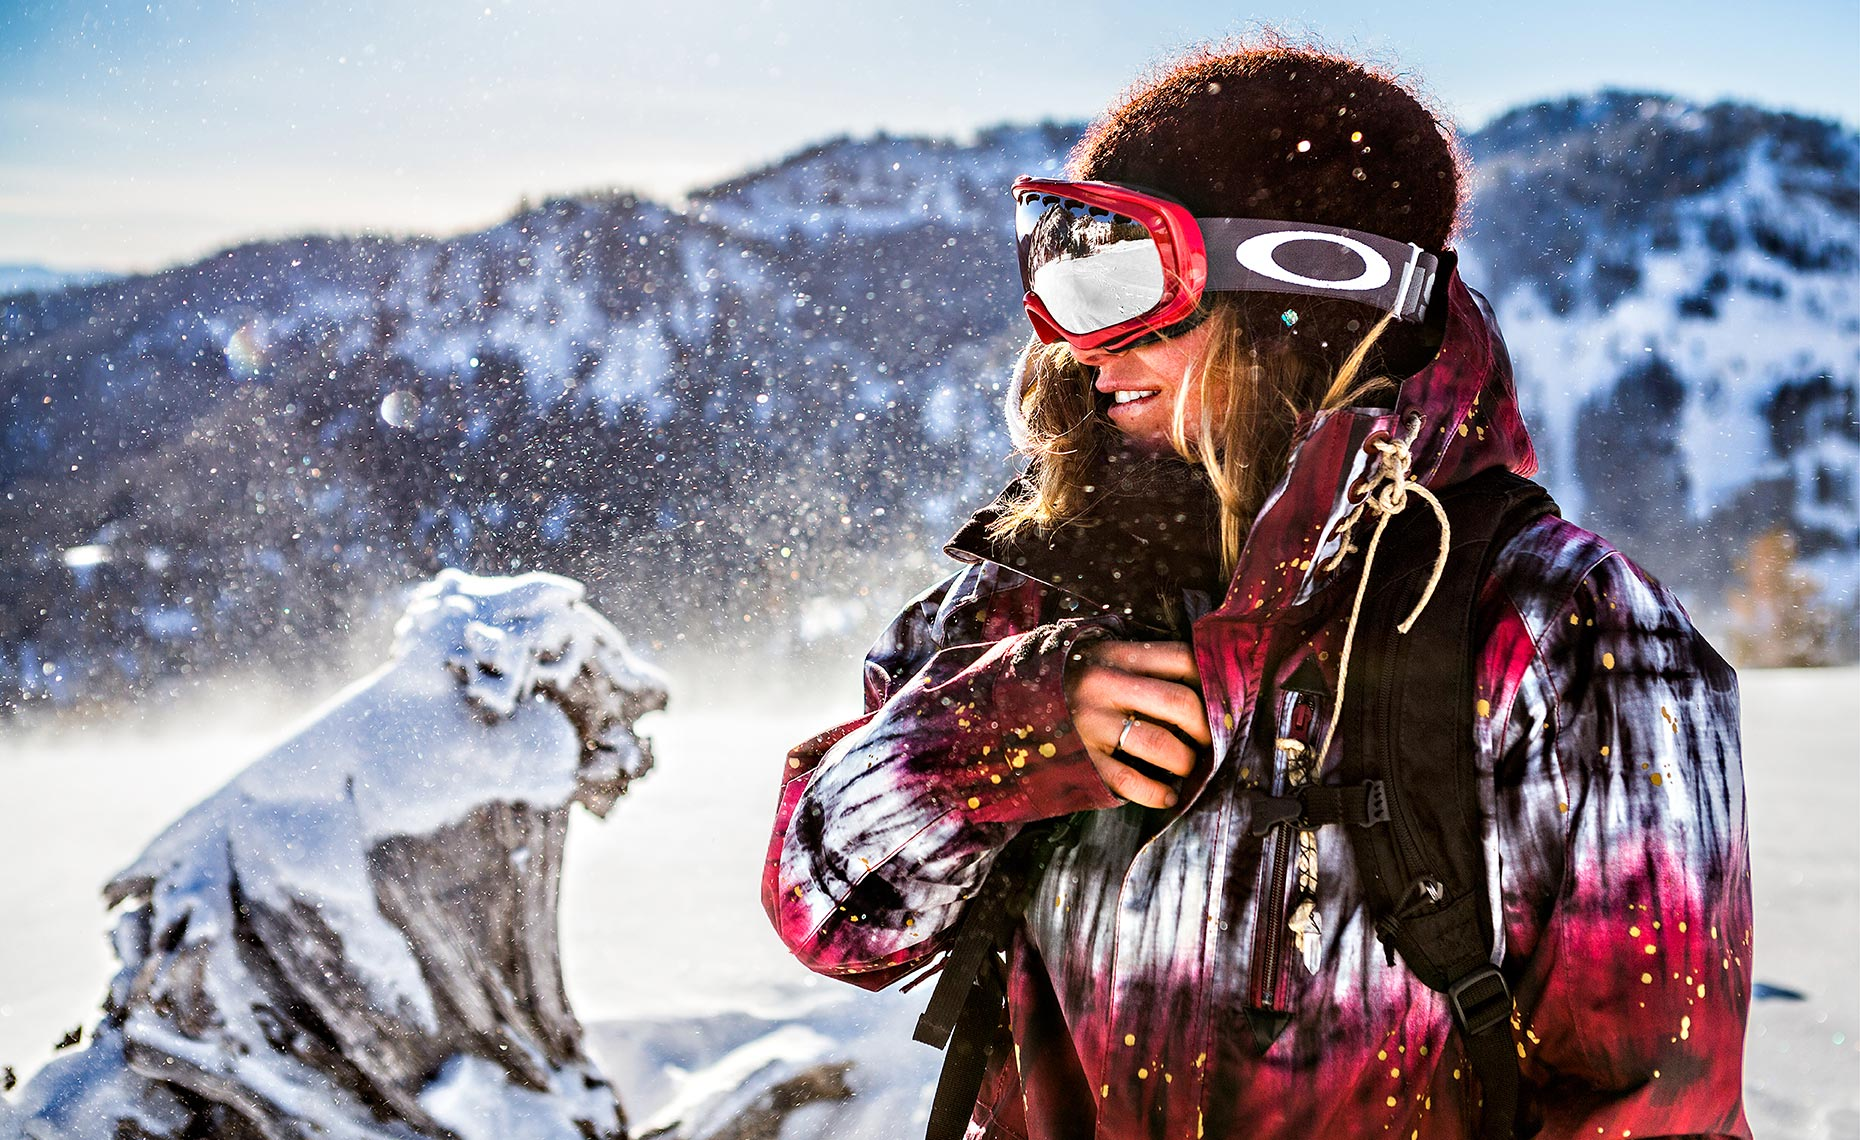 05_Jamie_Anderson_Whitewolf_Lake_Tahoe_Portrait_Lifestyle_Chris_Wellhausen_Photography.JPG